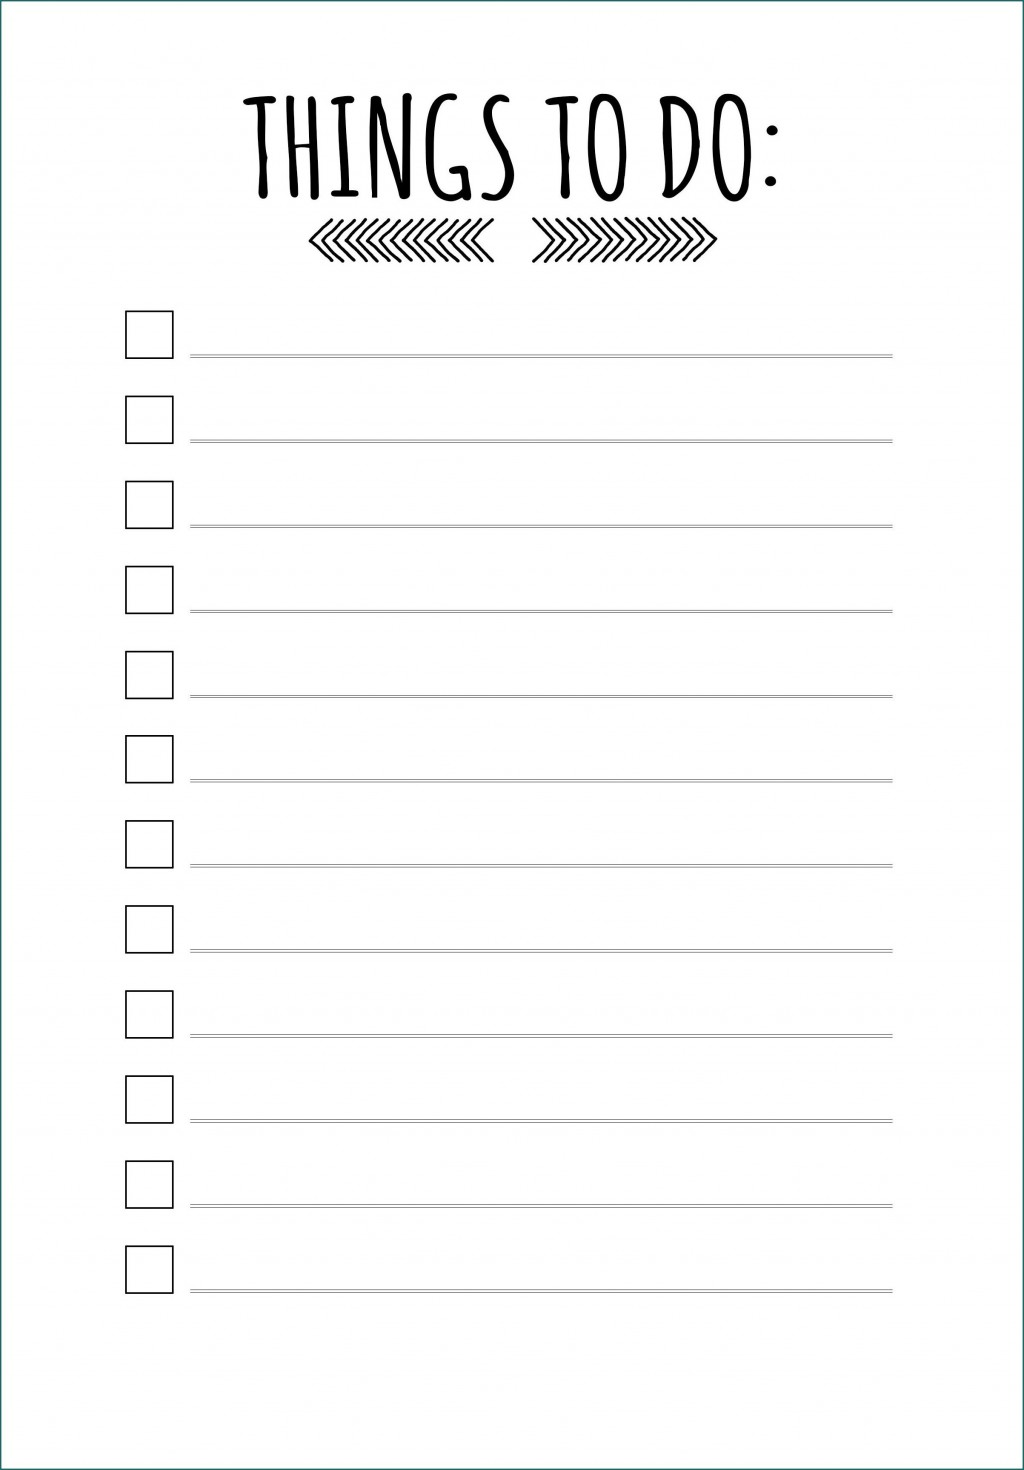 005 Fascinating Thing To Do List Template Sample Large